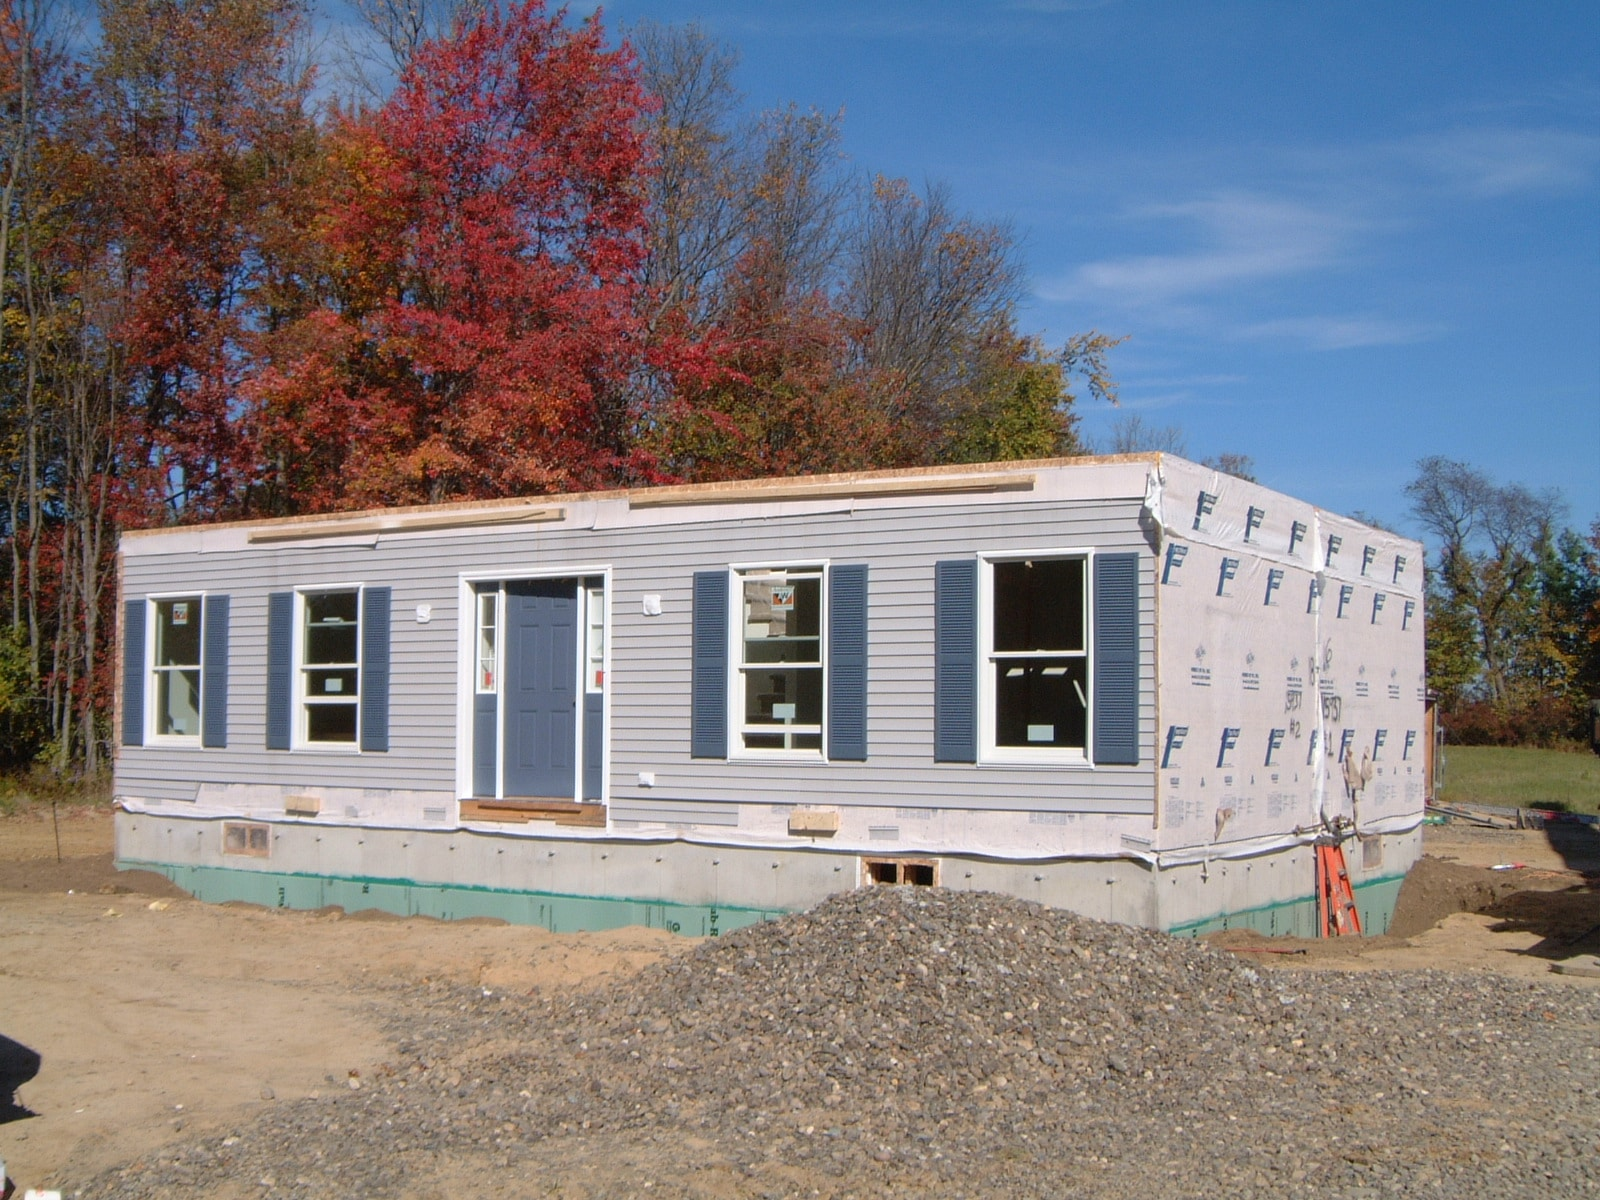 first story boxes of a two story modular home